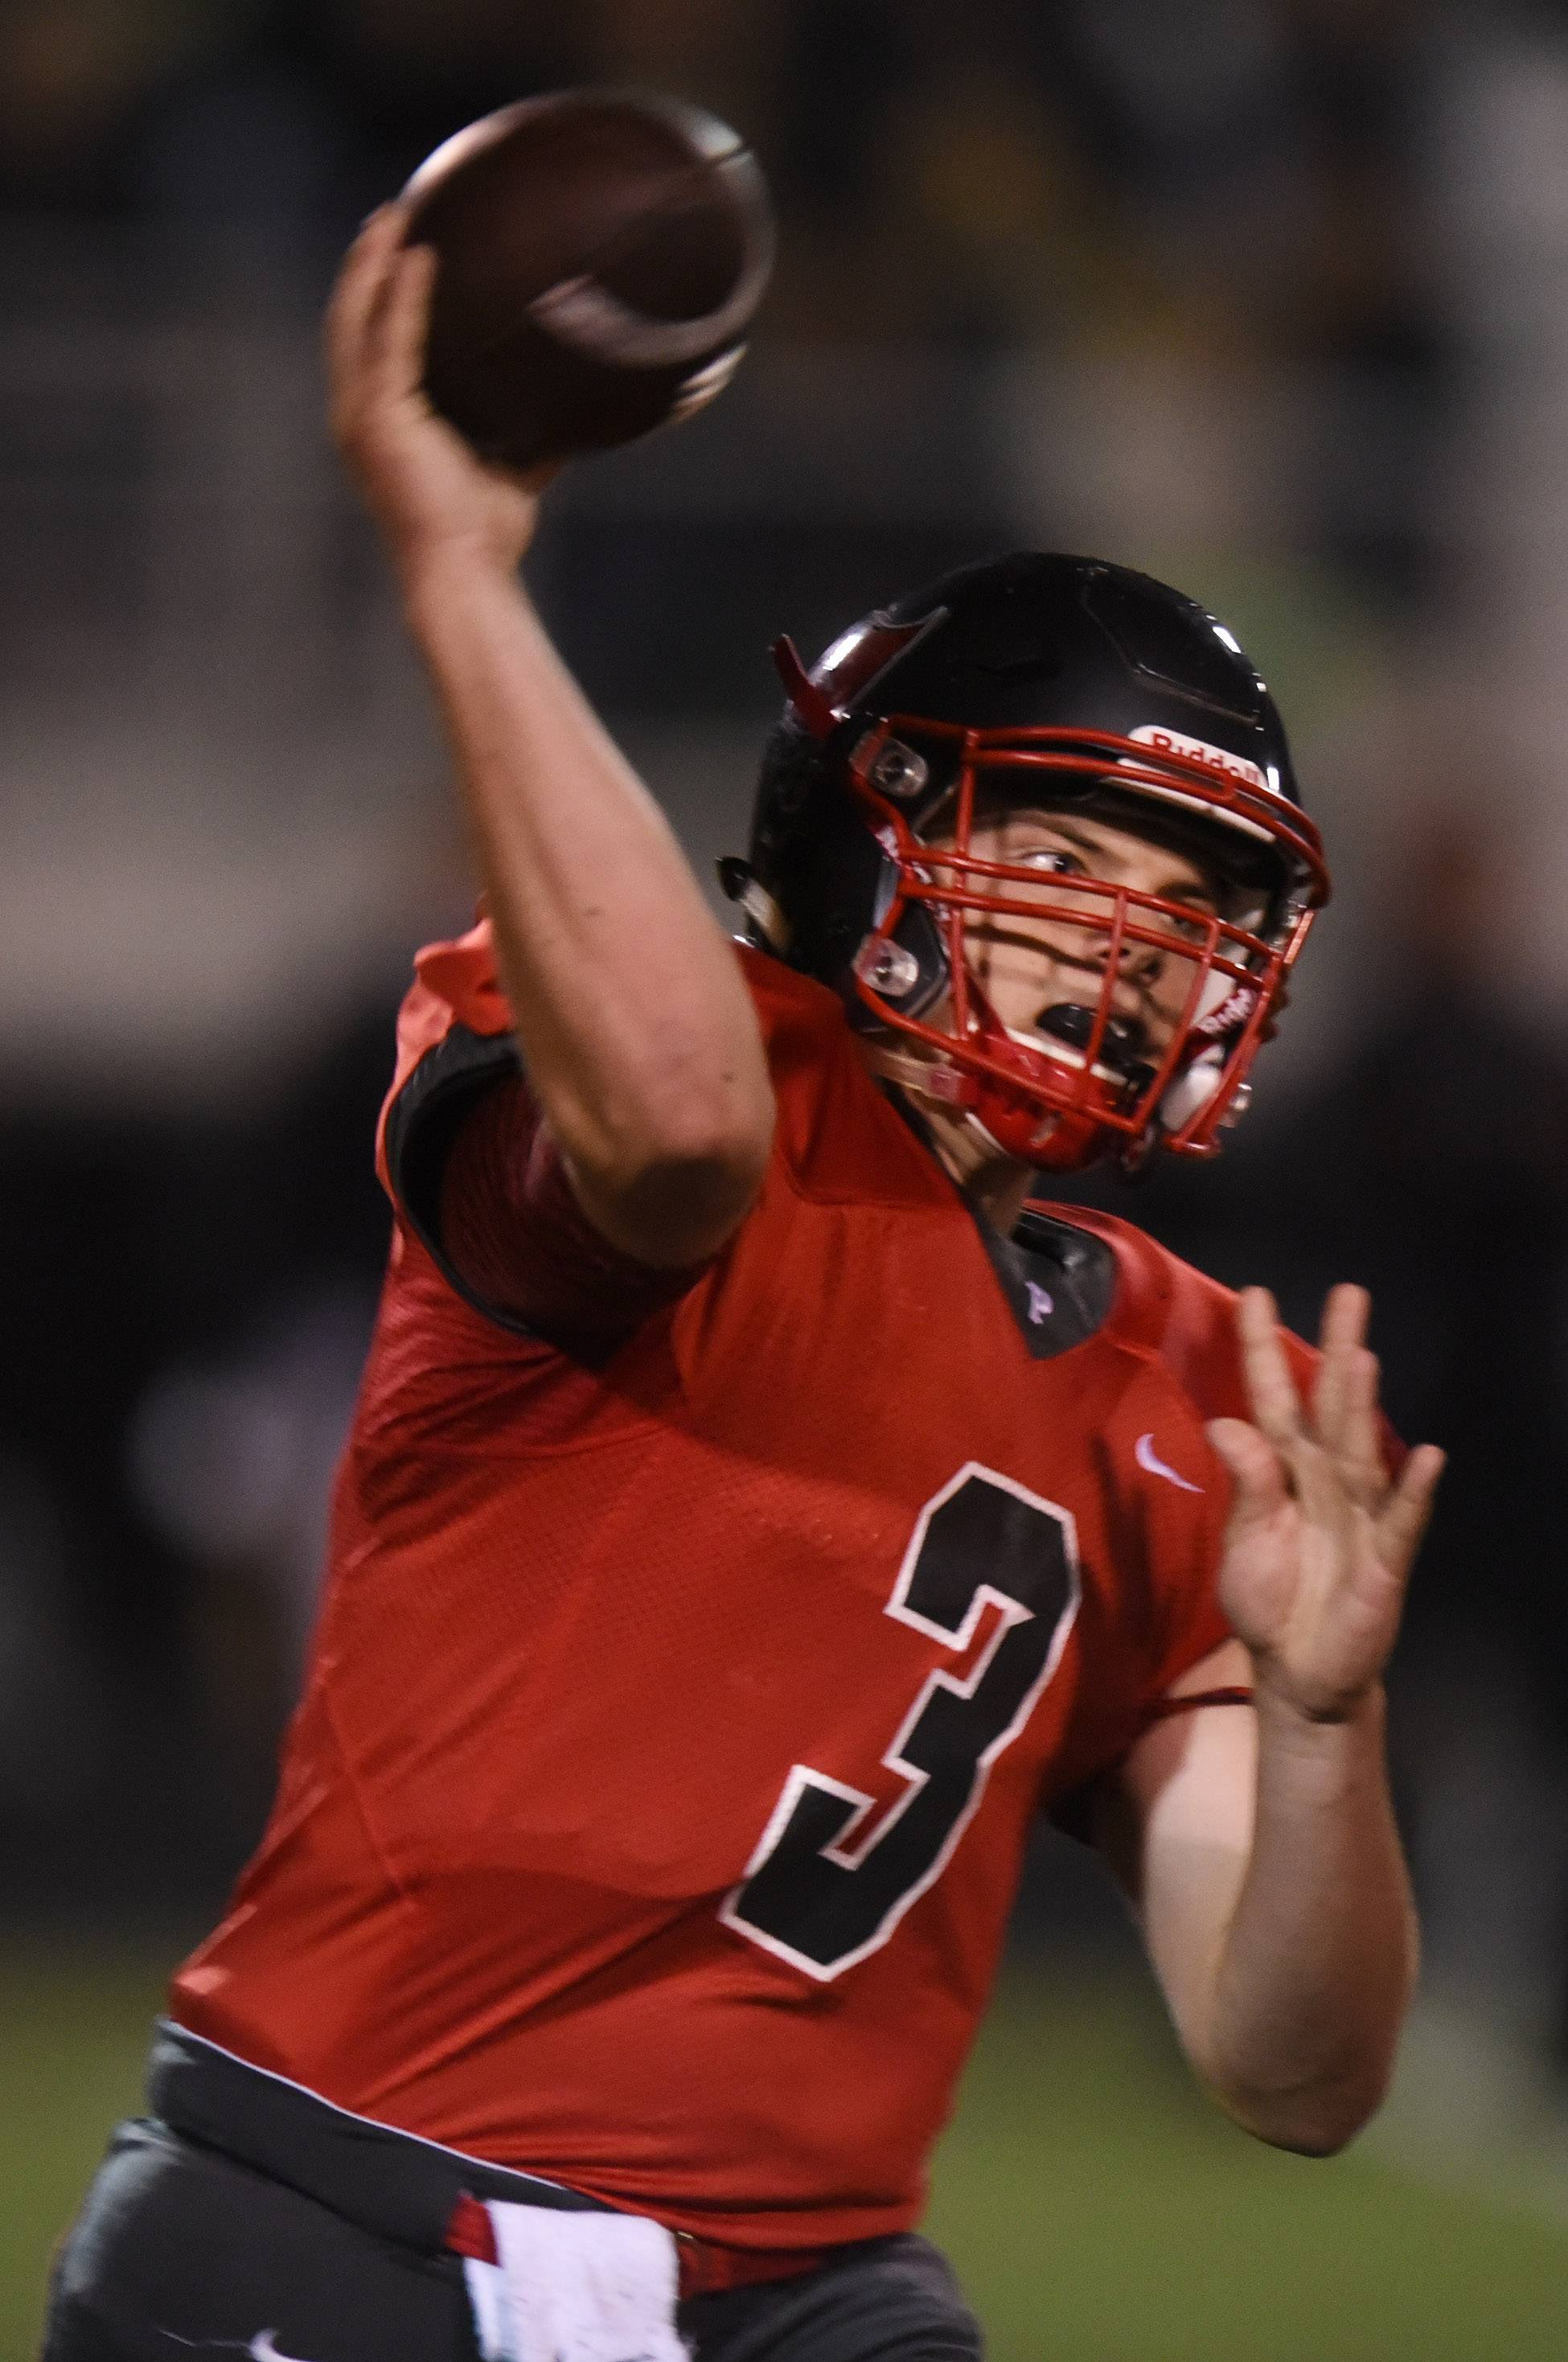 Palatine quarterback Zachary Oles throws a pass during Friday's game against Fremd.